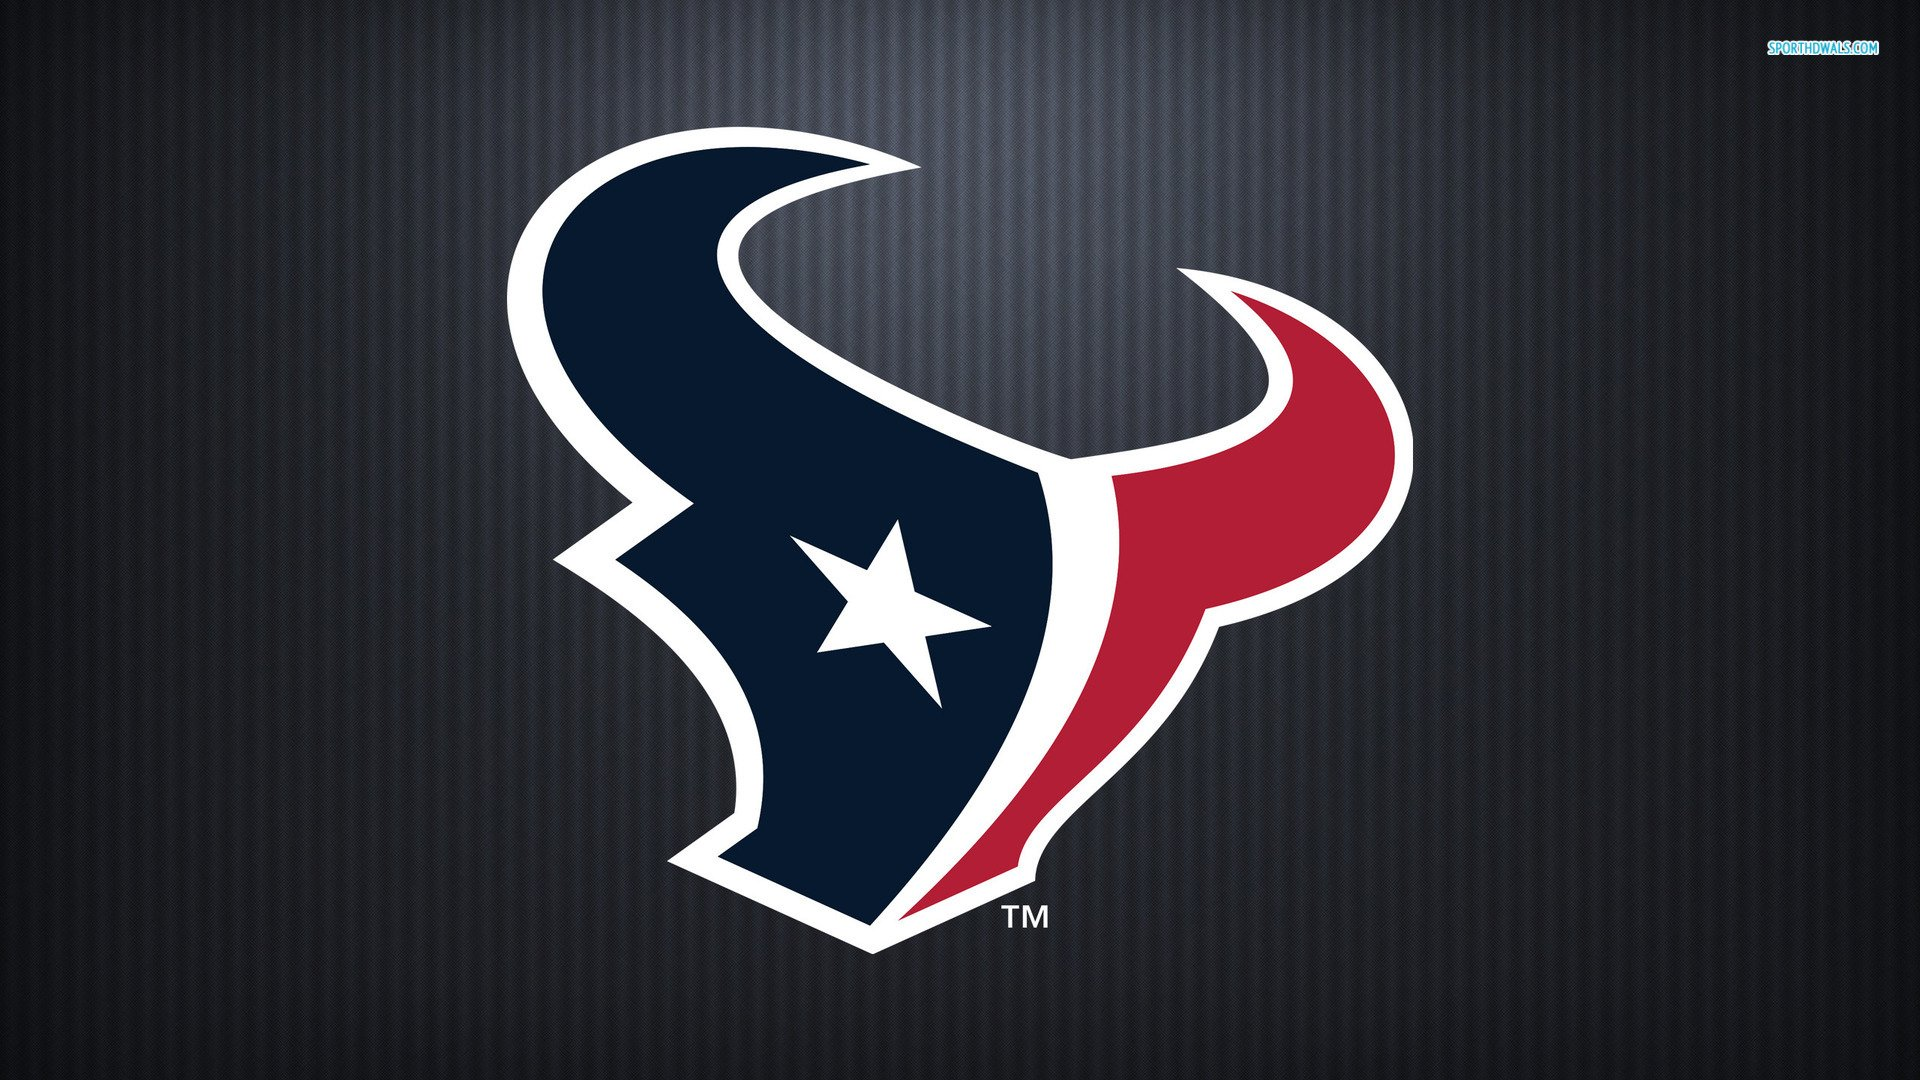 Houston Texans HD Background Wallpaper HD Wallpapers HD Backgrounds 1920x1080